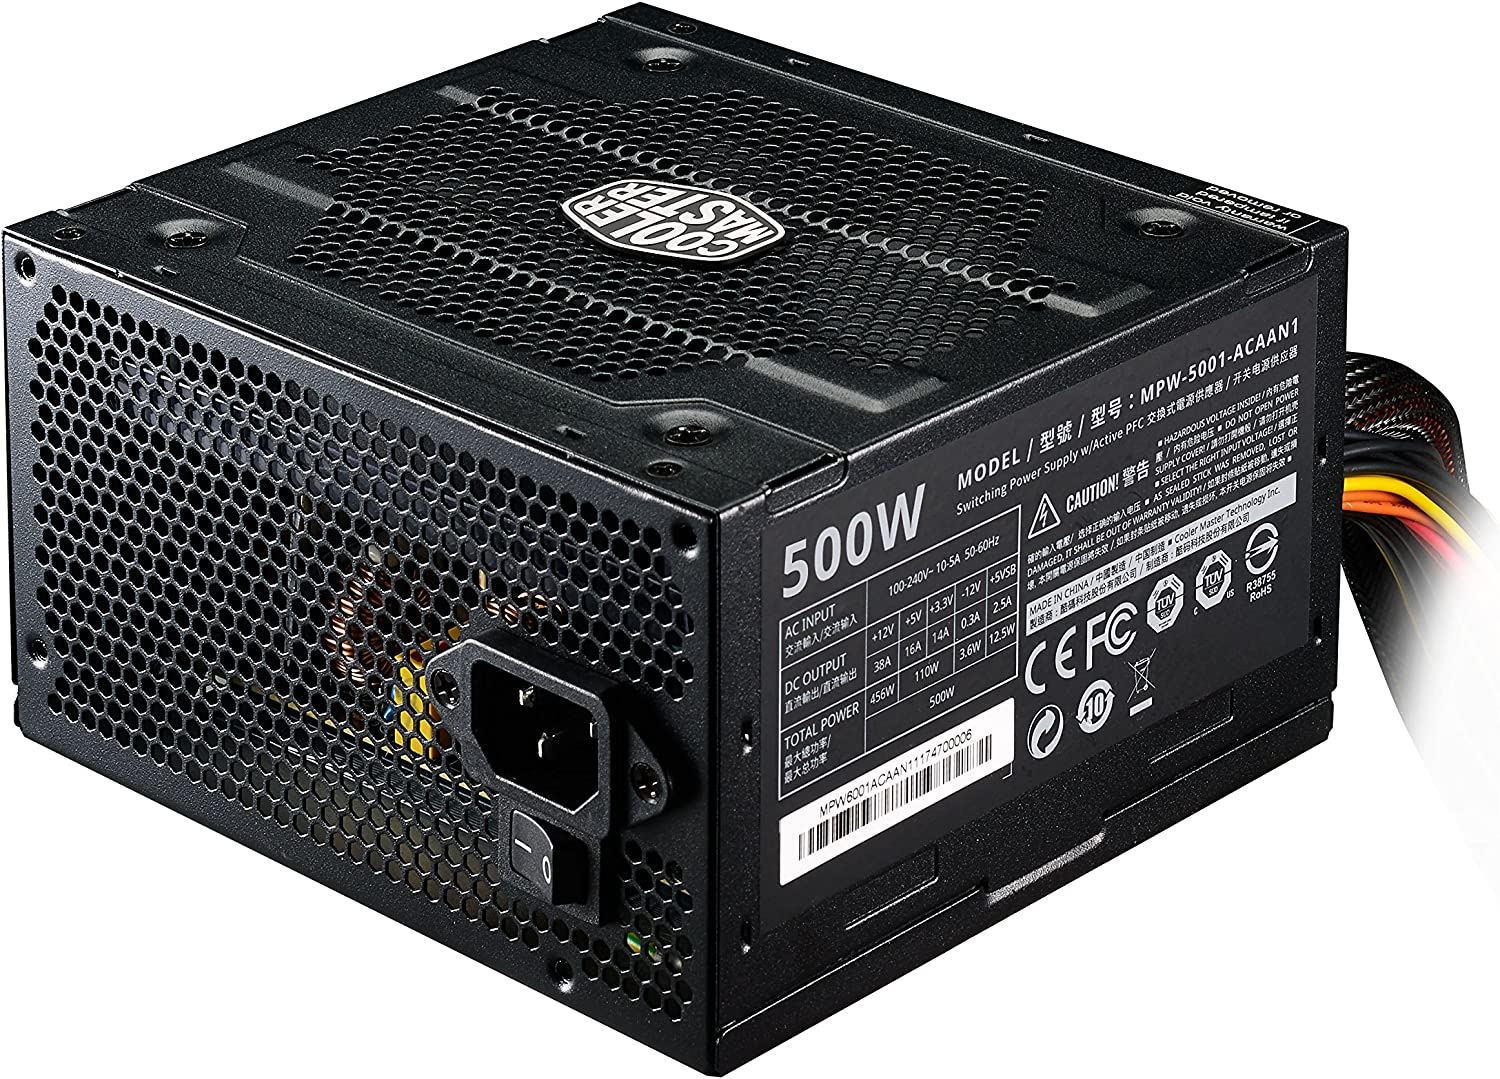 Cooler Master Elite 500W Ver.3 - ATX Power Supply Quiet 120mm Fan PCI-E Support